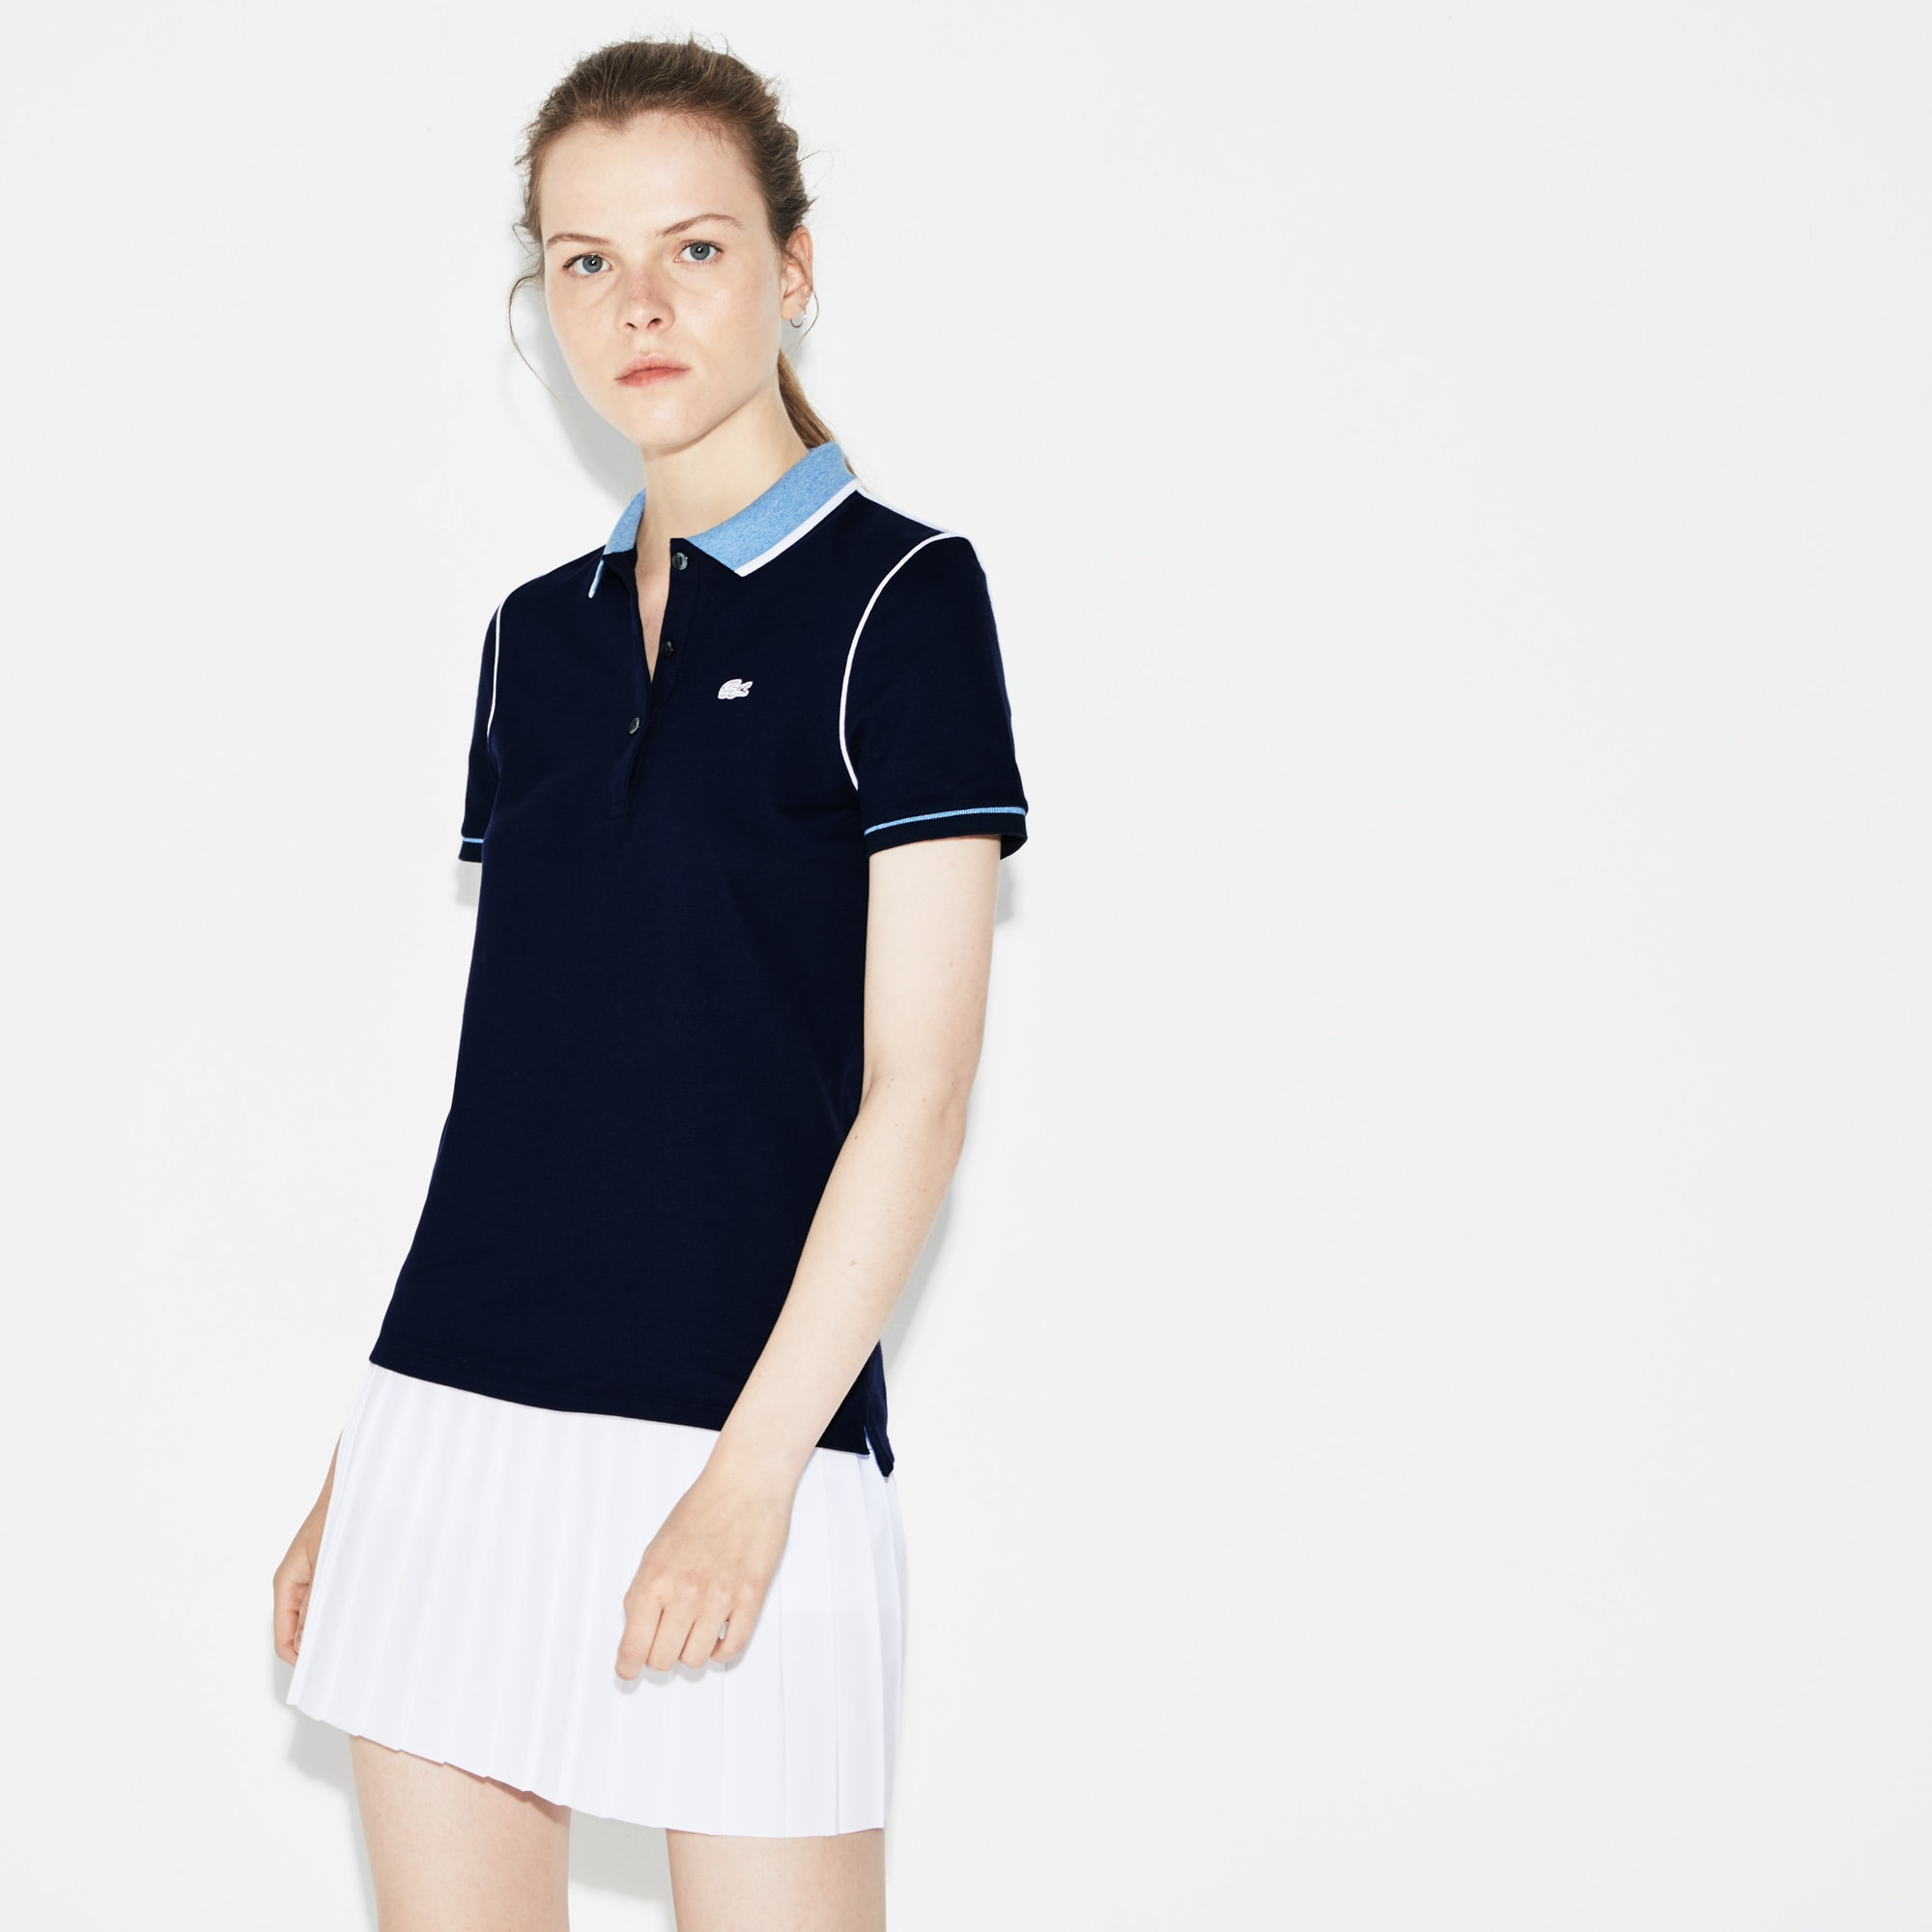 Women's SPORT Roland Garros Edition Stretch Mini Piqué Polo